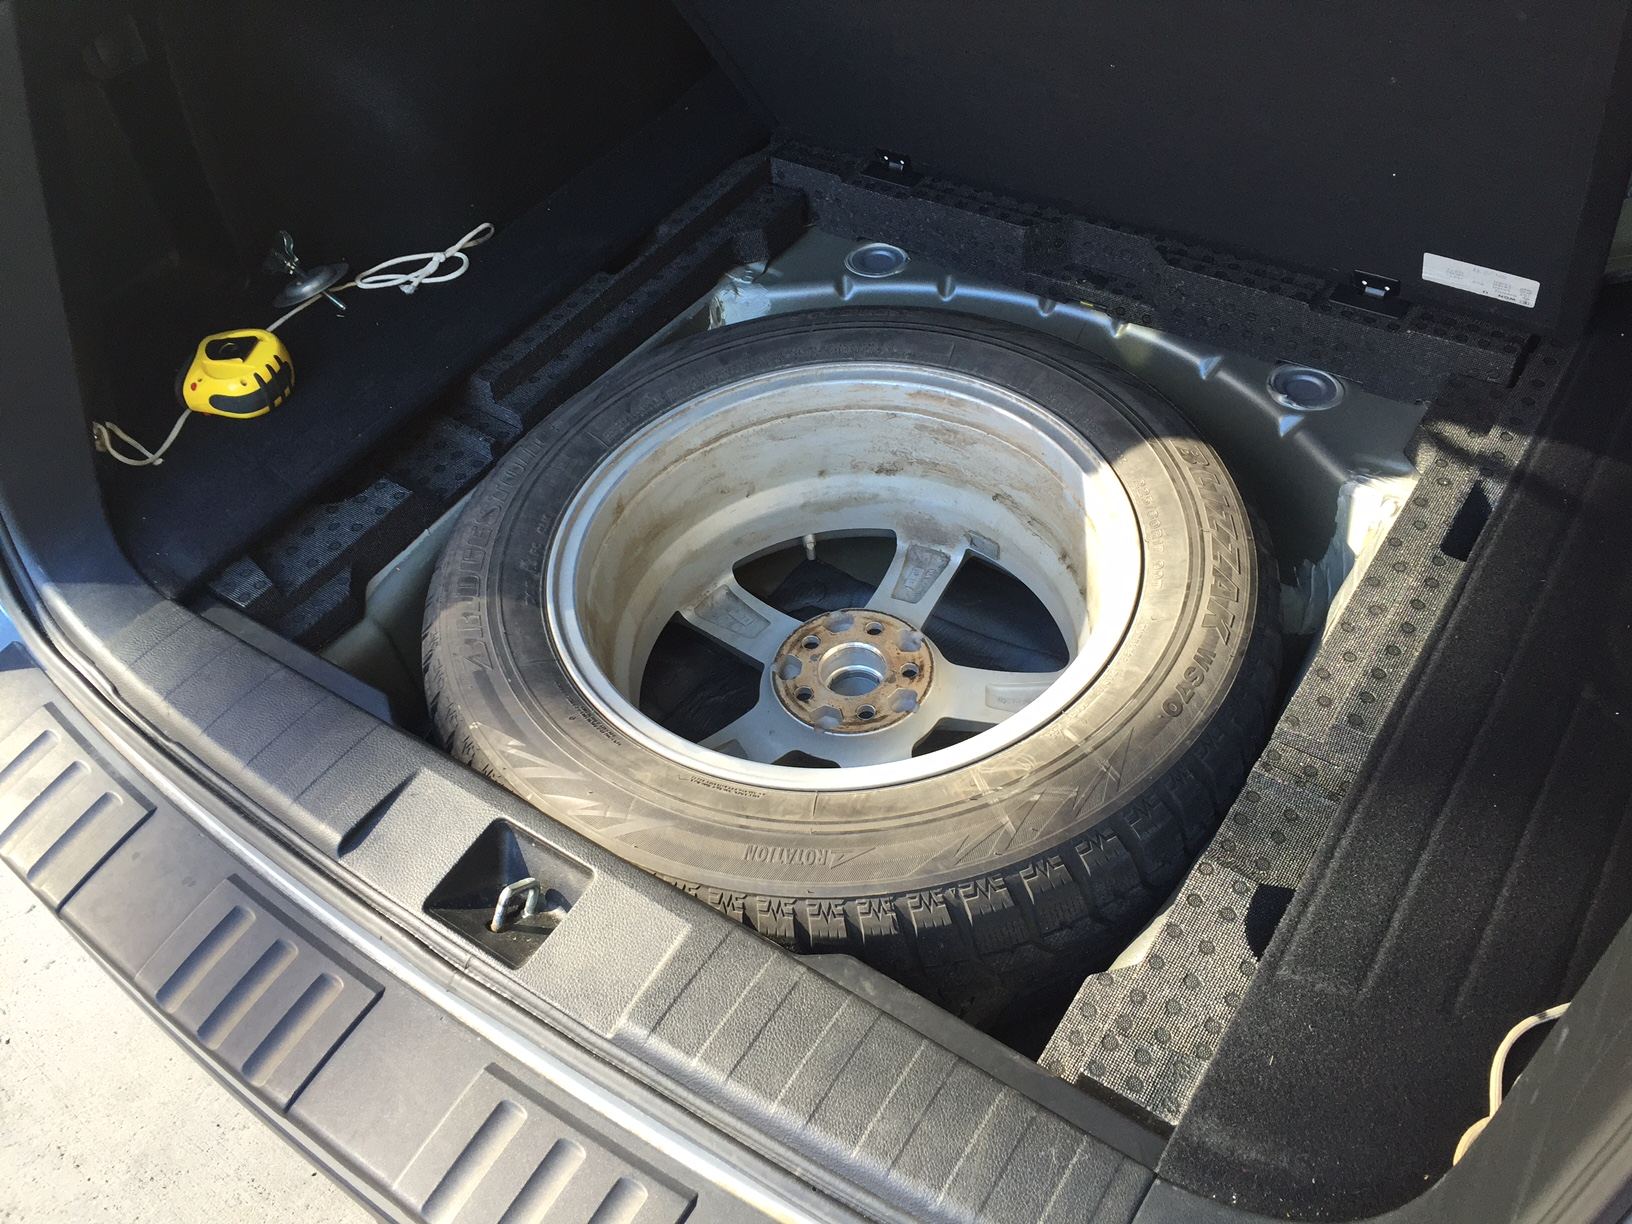 I fit a full size spare in my 2014 Outback! - Subaru ...